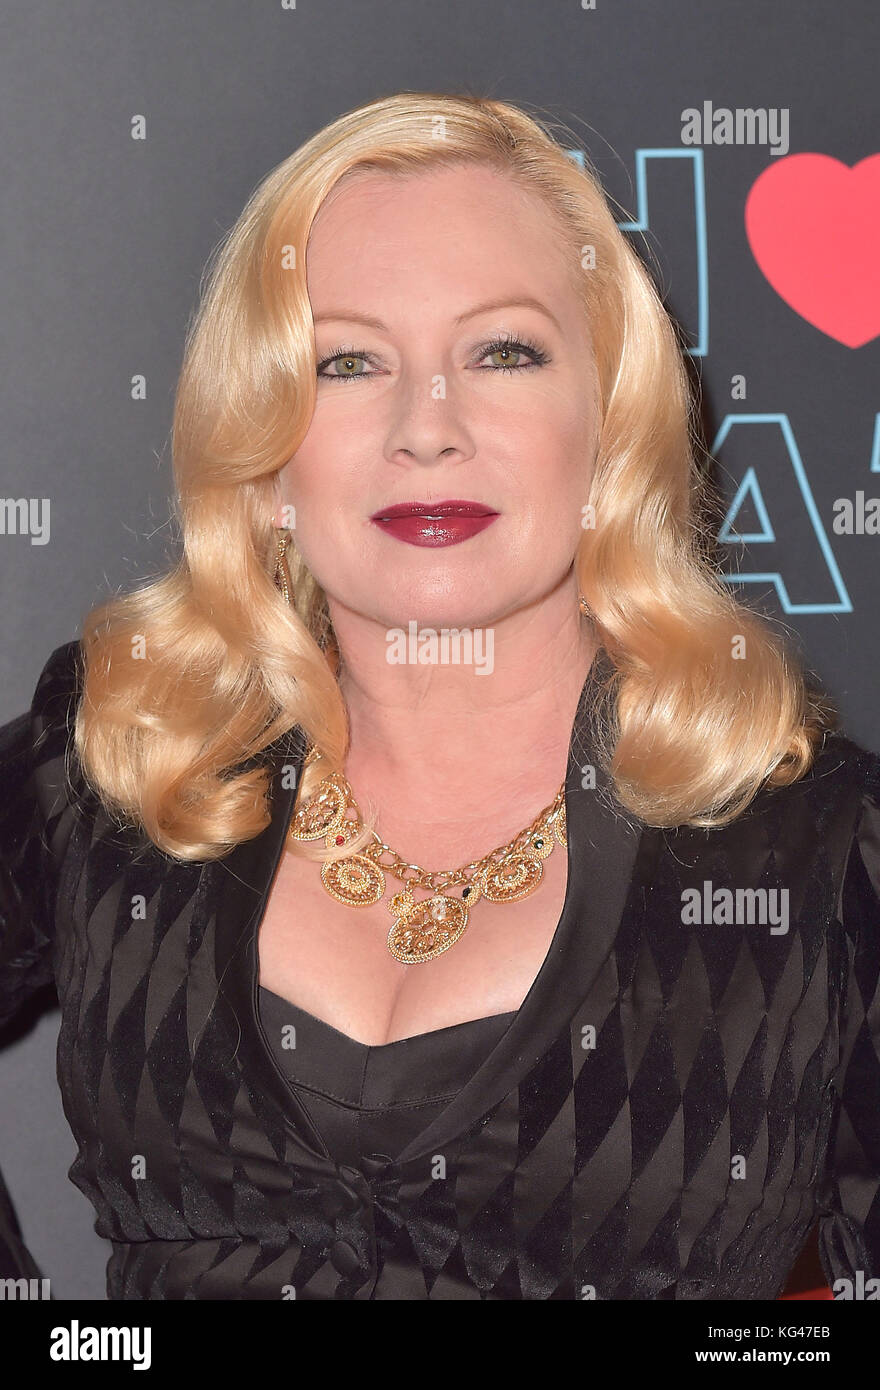 Traci Lords Stock Photos amp